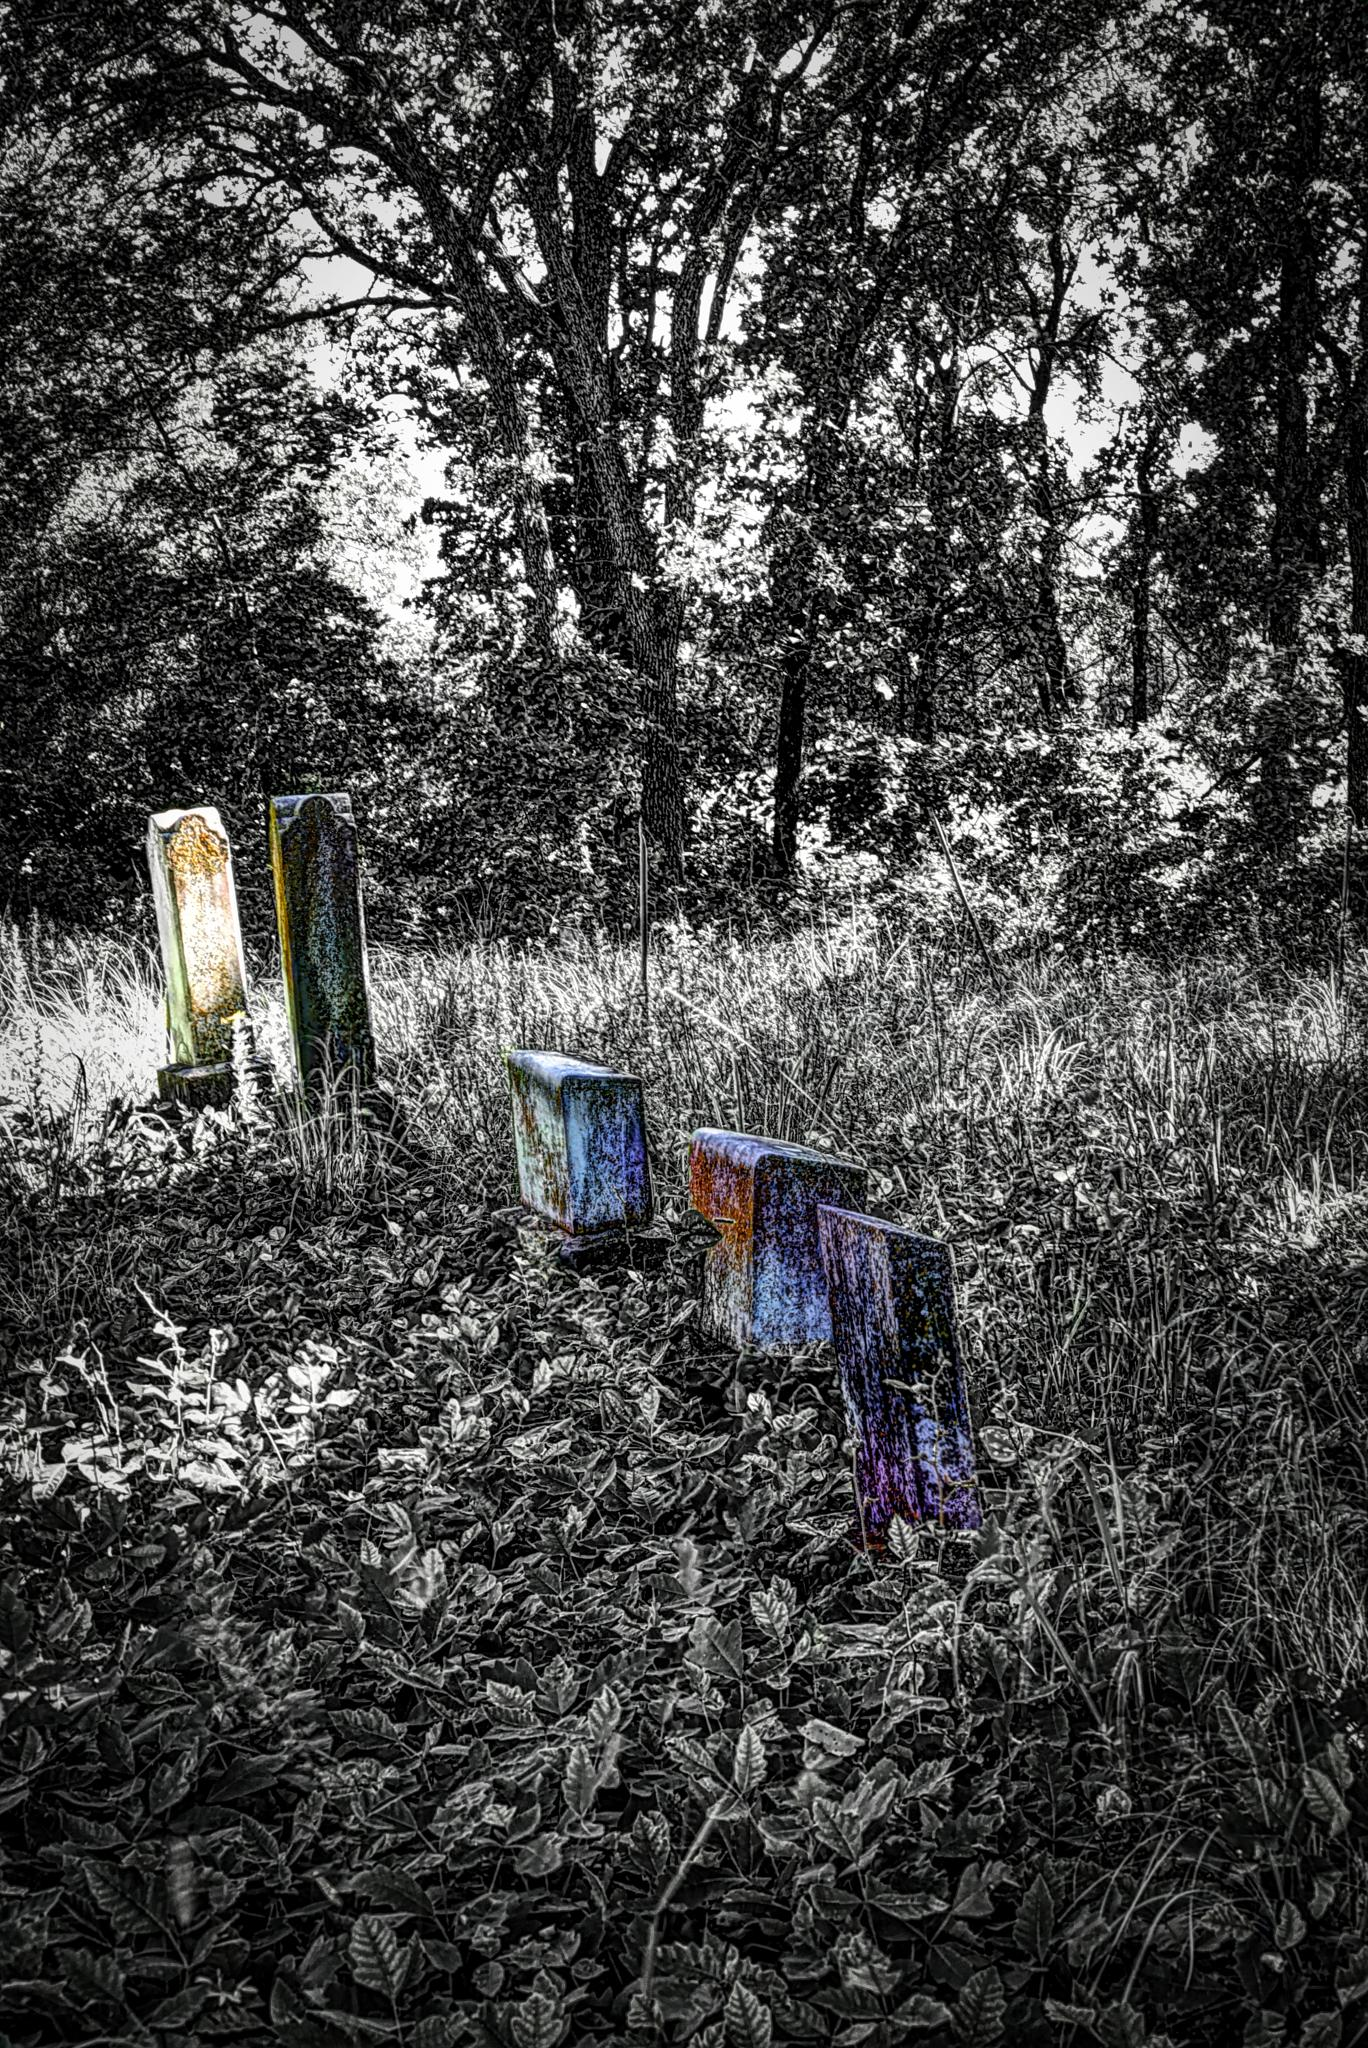 The Five Stones by kdmoody56